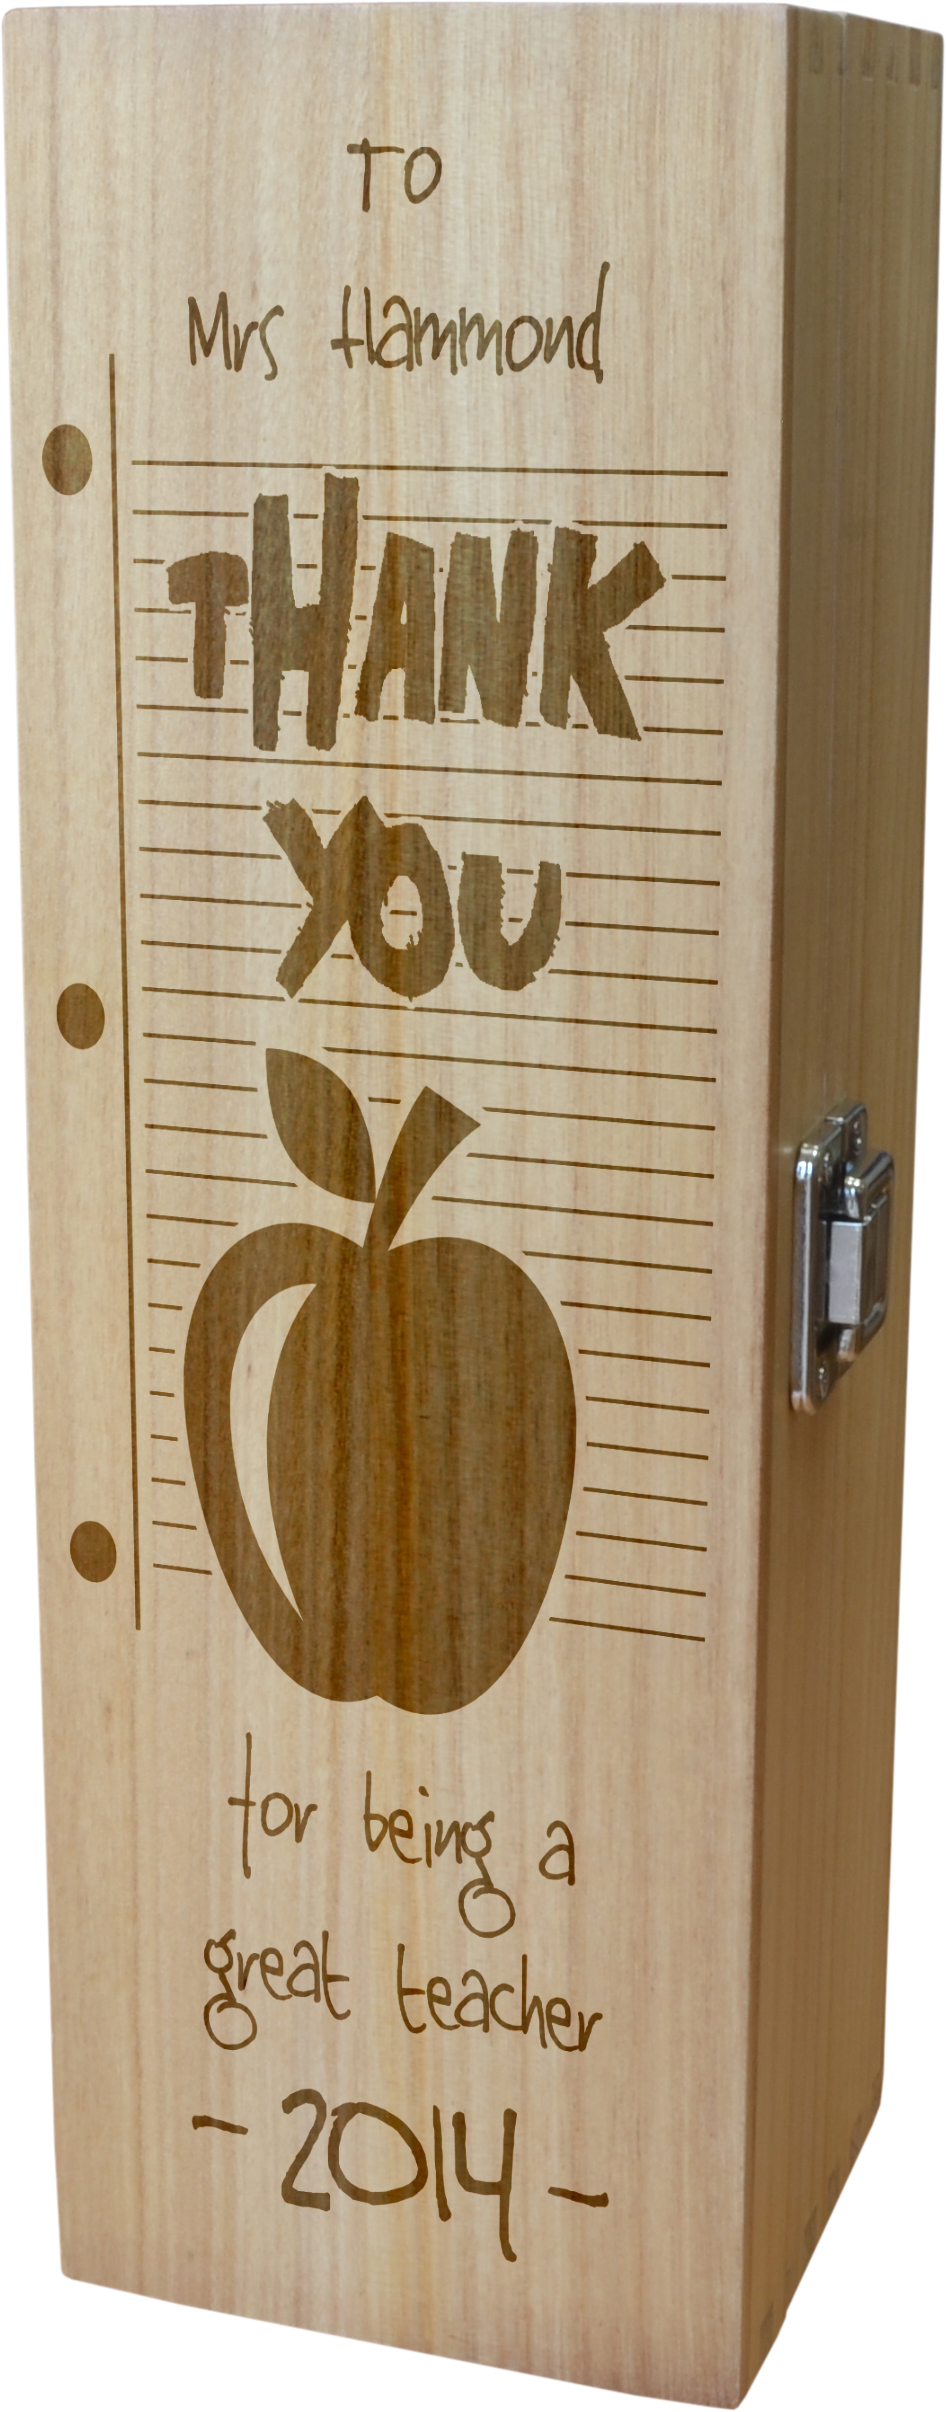 "Personalised Wooden Wine Box with Hinged Lid - Thank You Teacher 35cm (13.75"")"